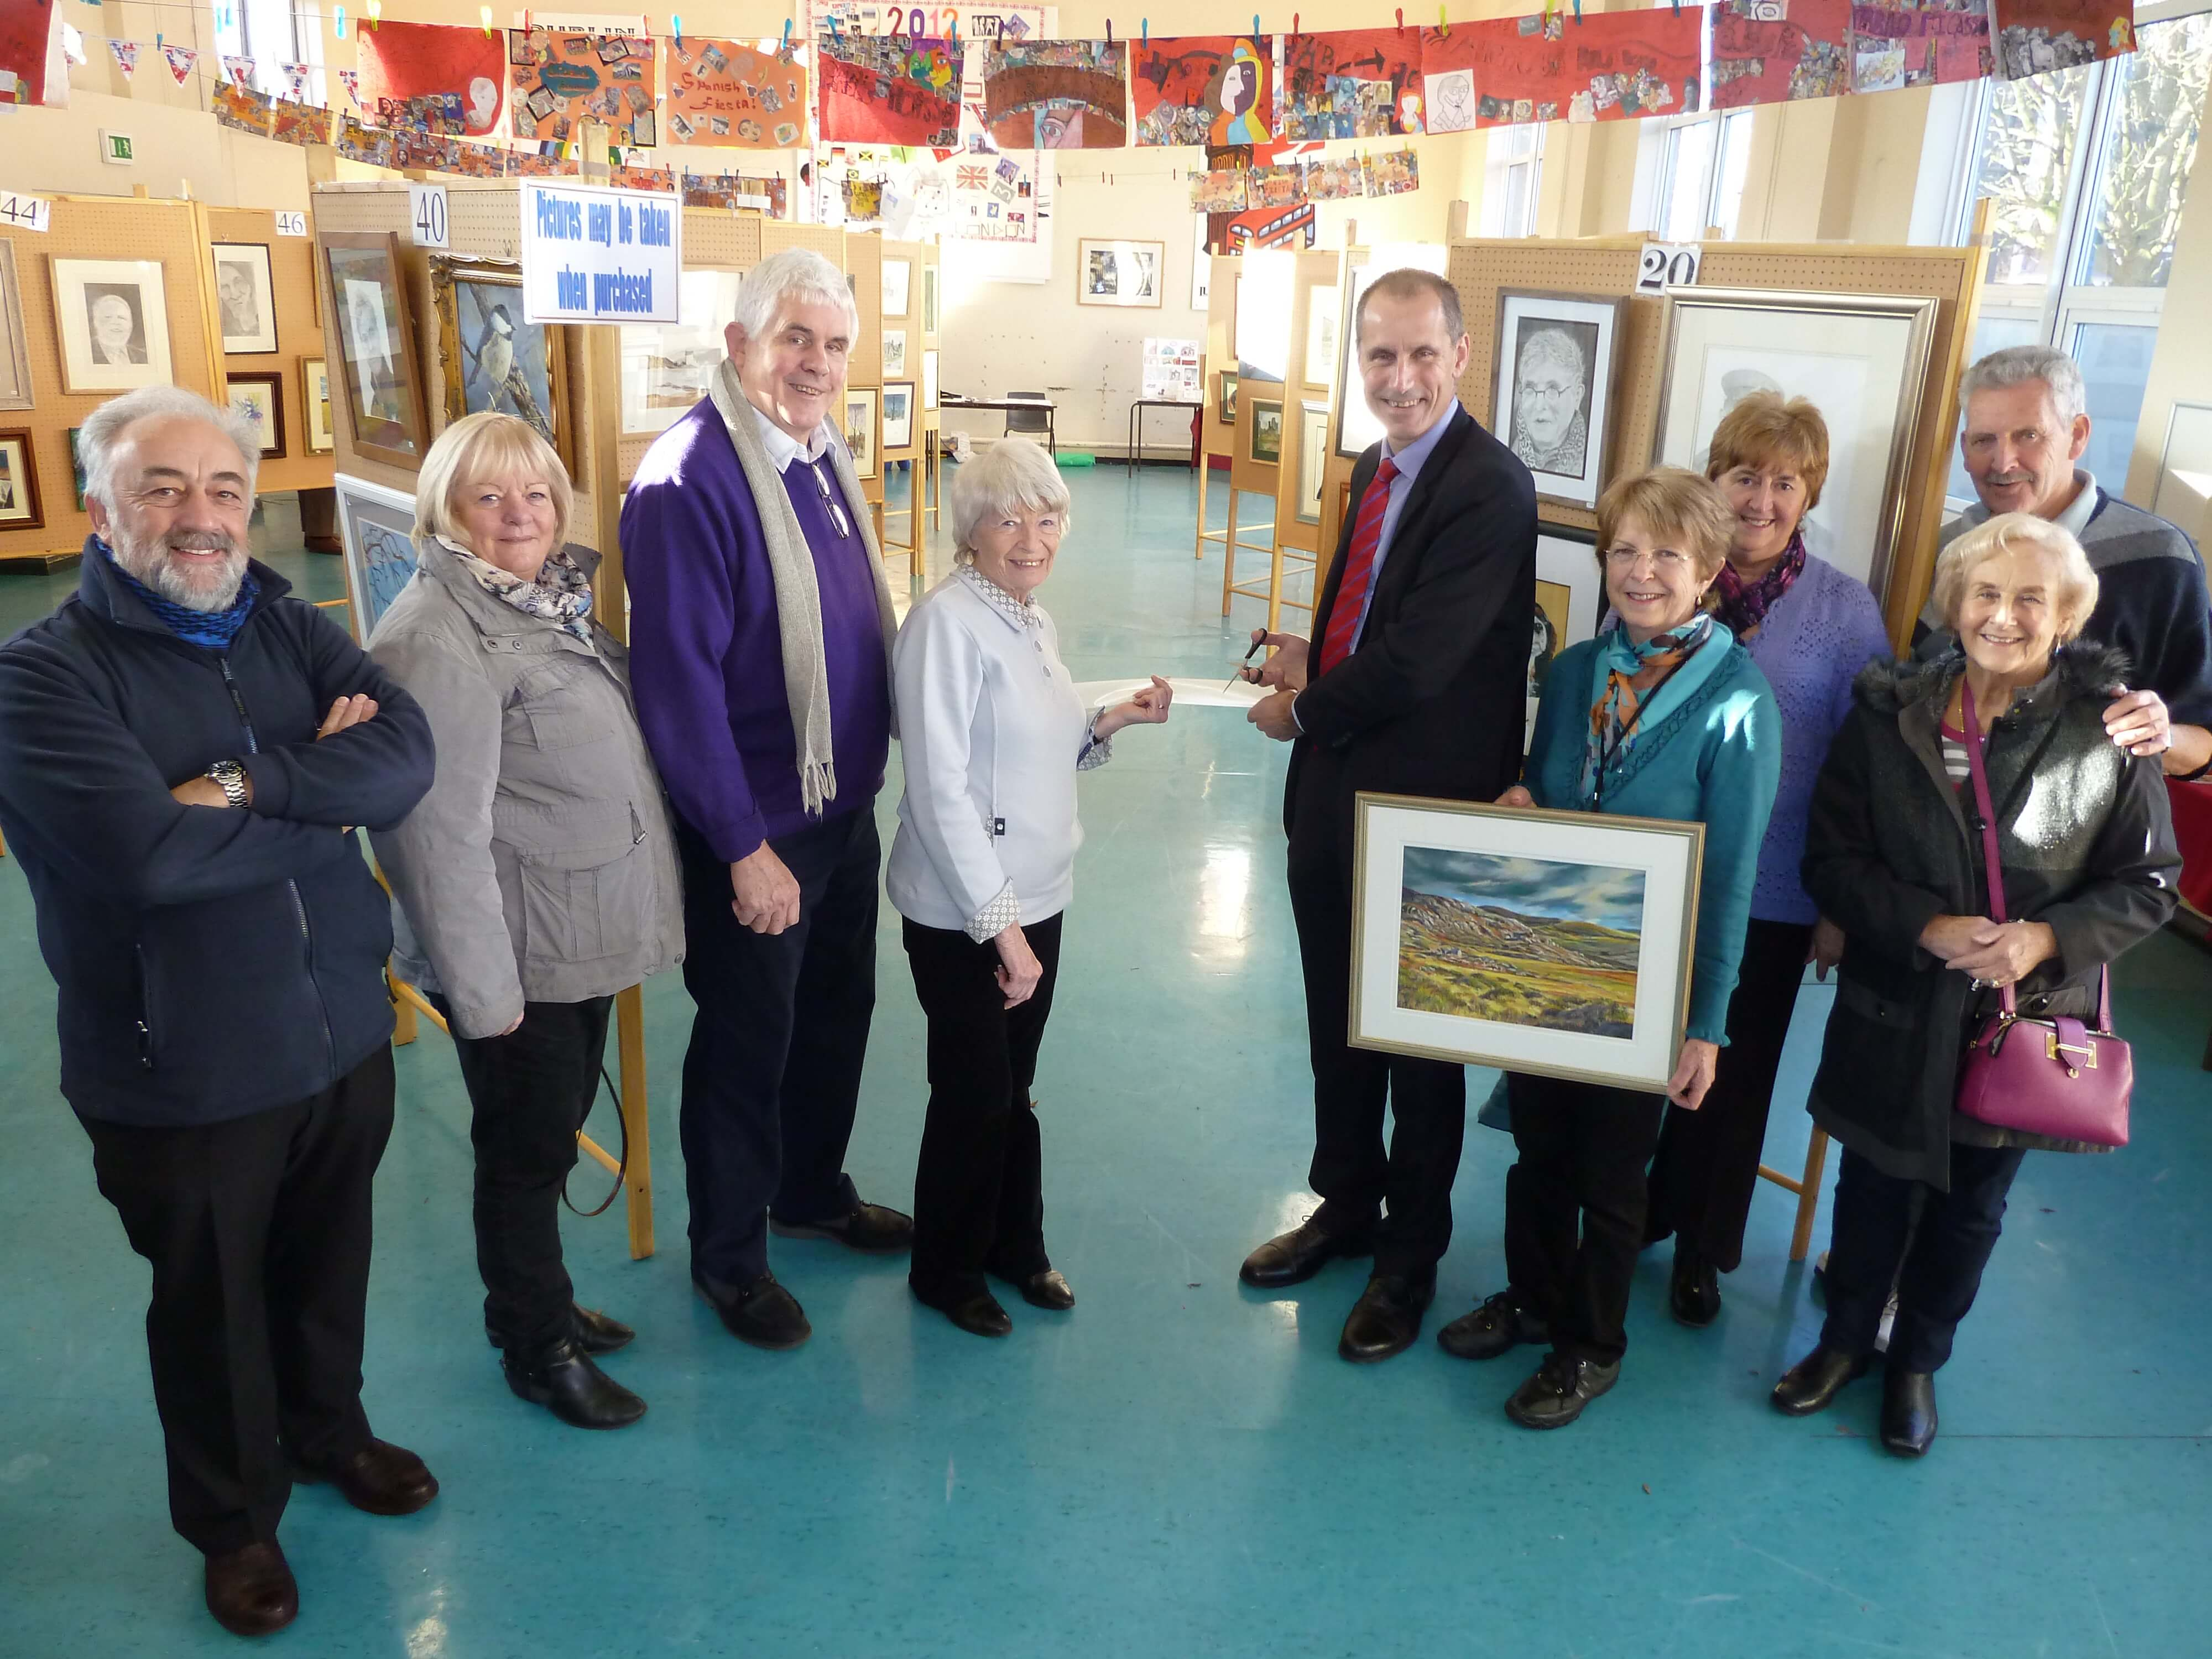 MP Bill Esterson with members of Maghull Art Group at their winter exhibition at Deyes High School.